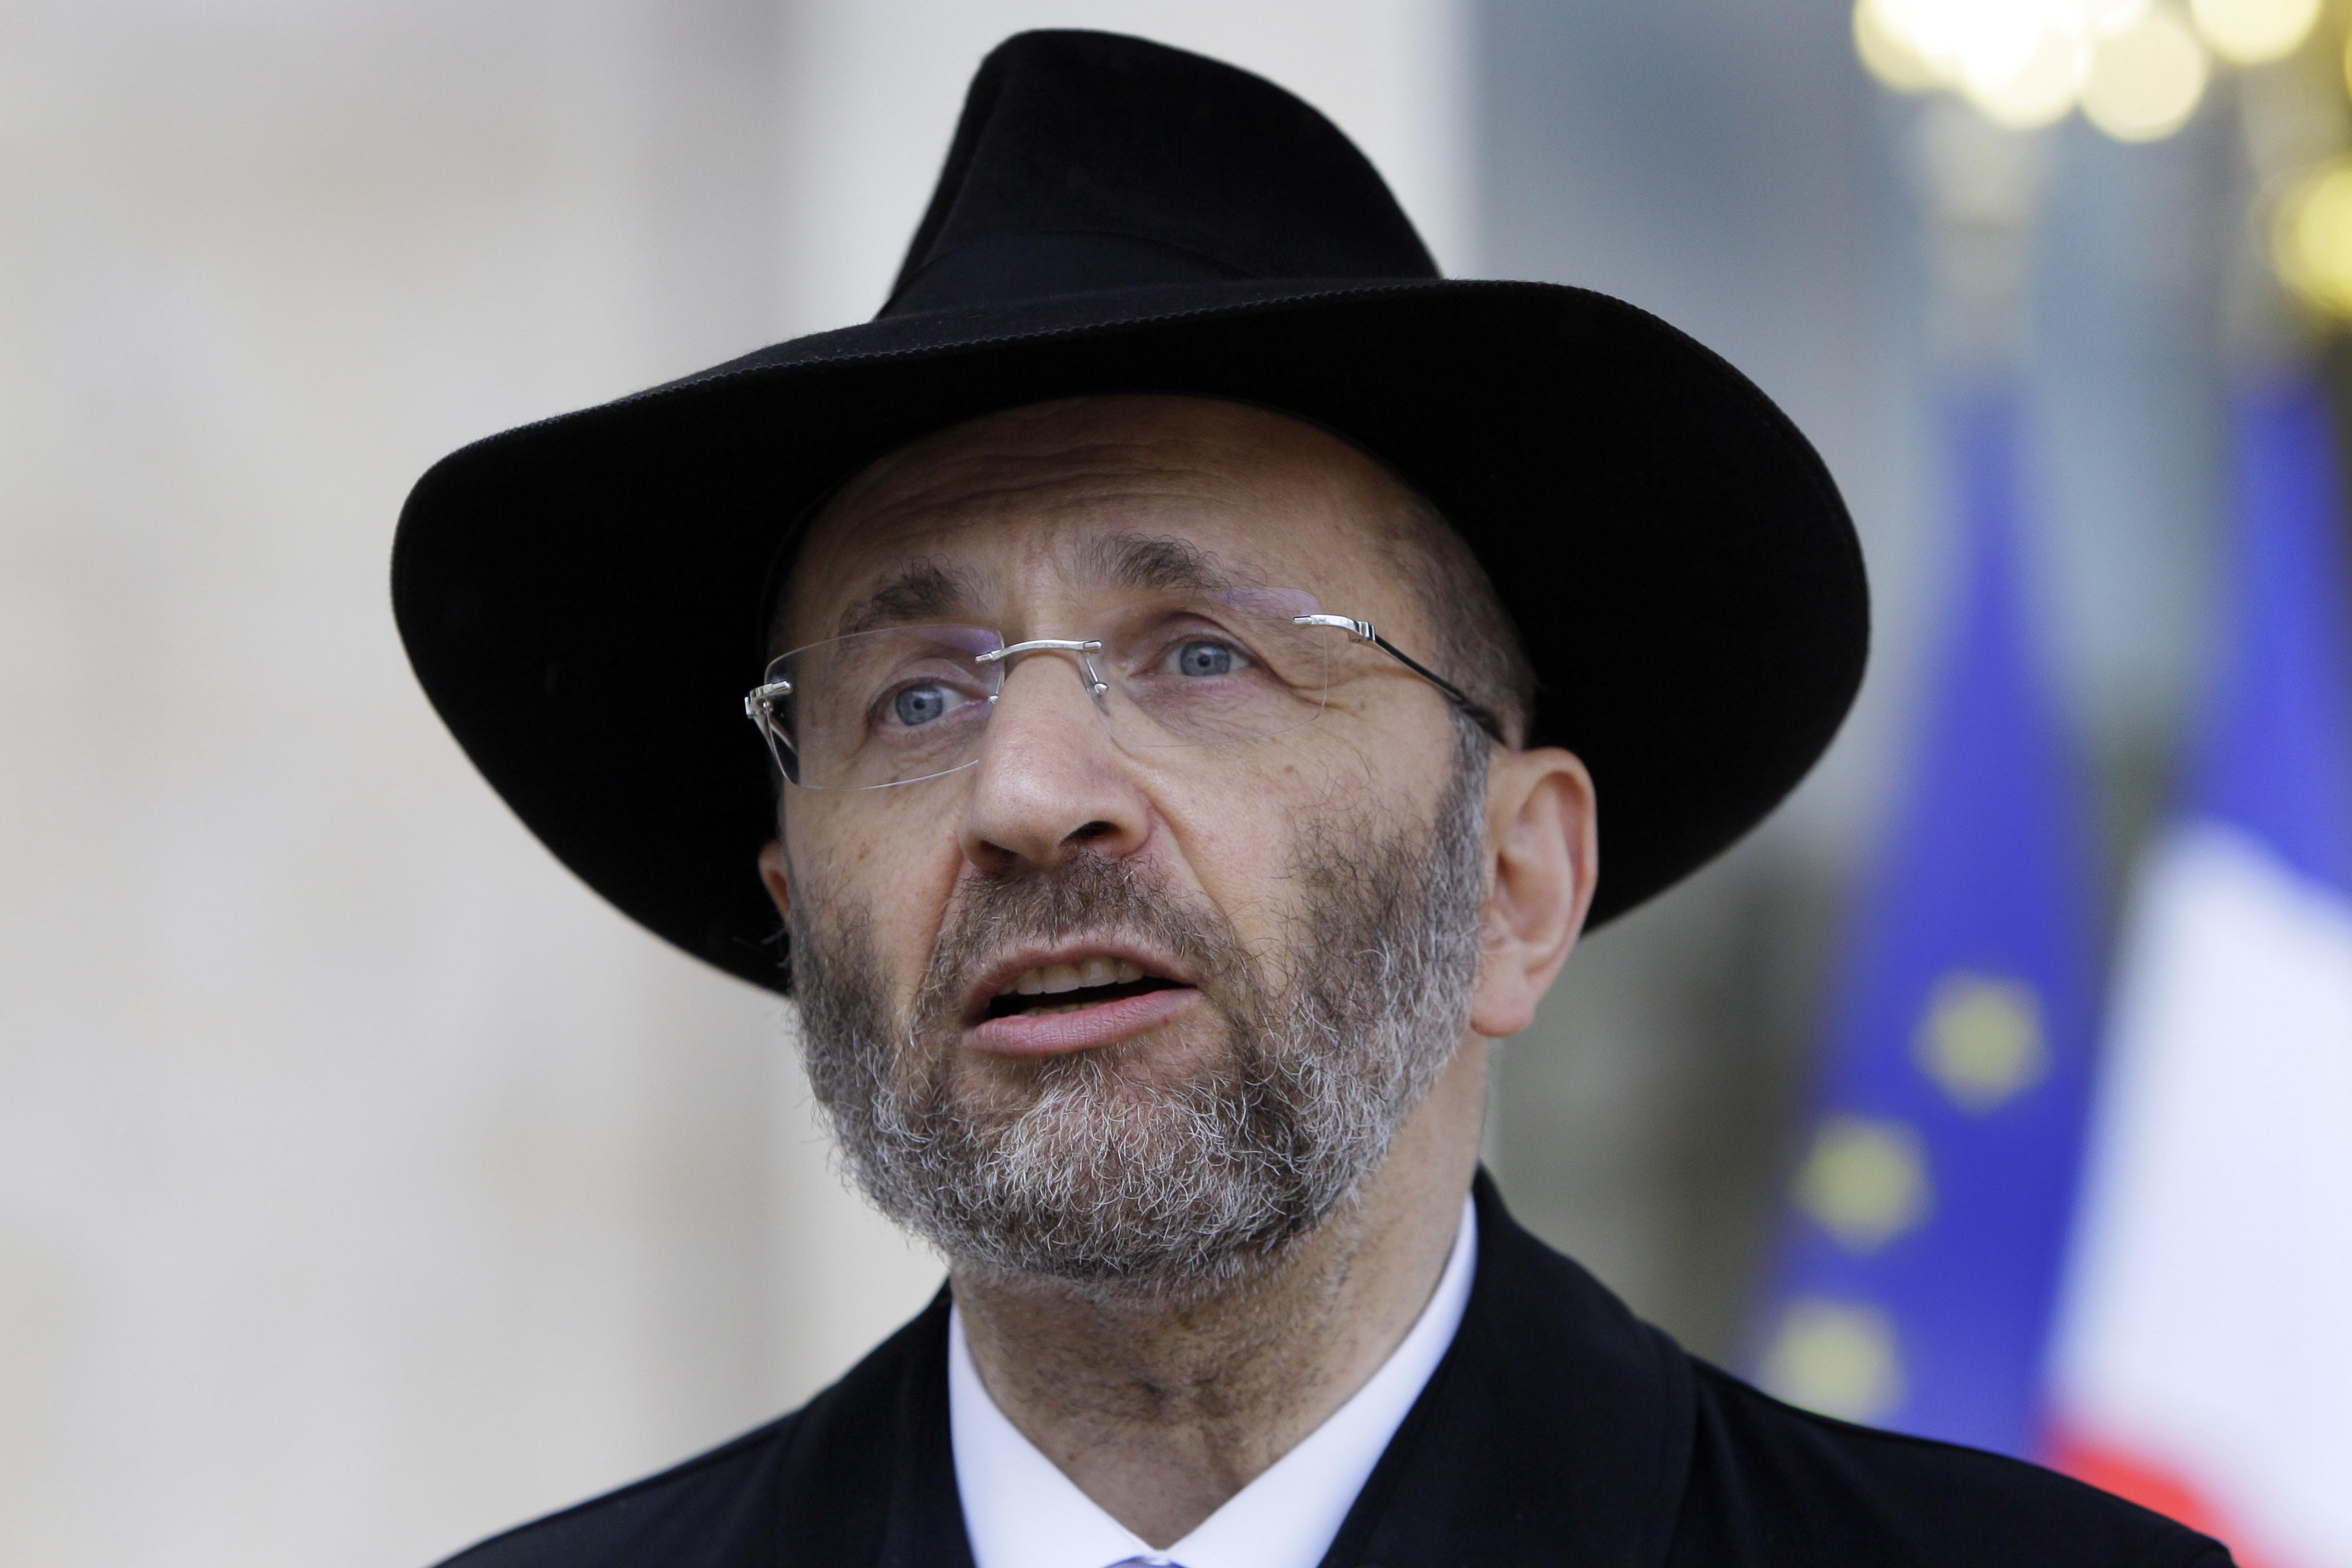 """FILE - In this July 12, 2012 file photo, France's Grand Rabbi Gilles Bernheim talks to the media after his meeting with French President Francois Hollande at the Elysee Palace in Paris. French Jewish leaders were holding an urgent meeting to discuss the career fate of France's chief rabbi Bernheim after he acknowledged """"mistakes"""" amid allegations that he plagiarized texts and lied about his educational background.(AP Photo/Francois Mori, File)"""